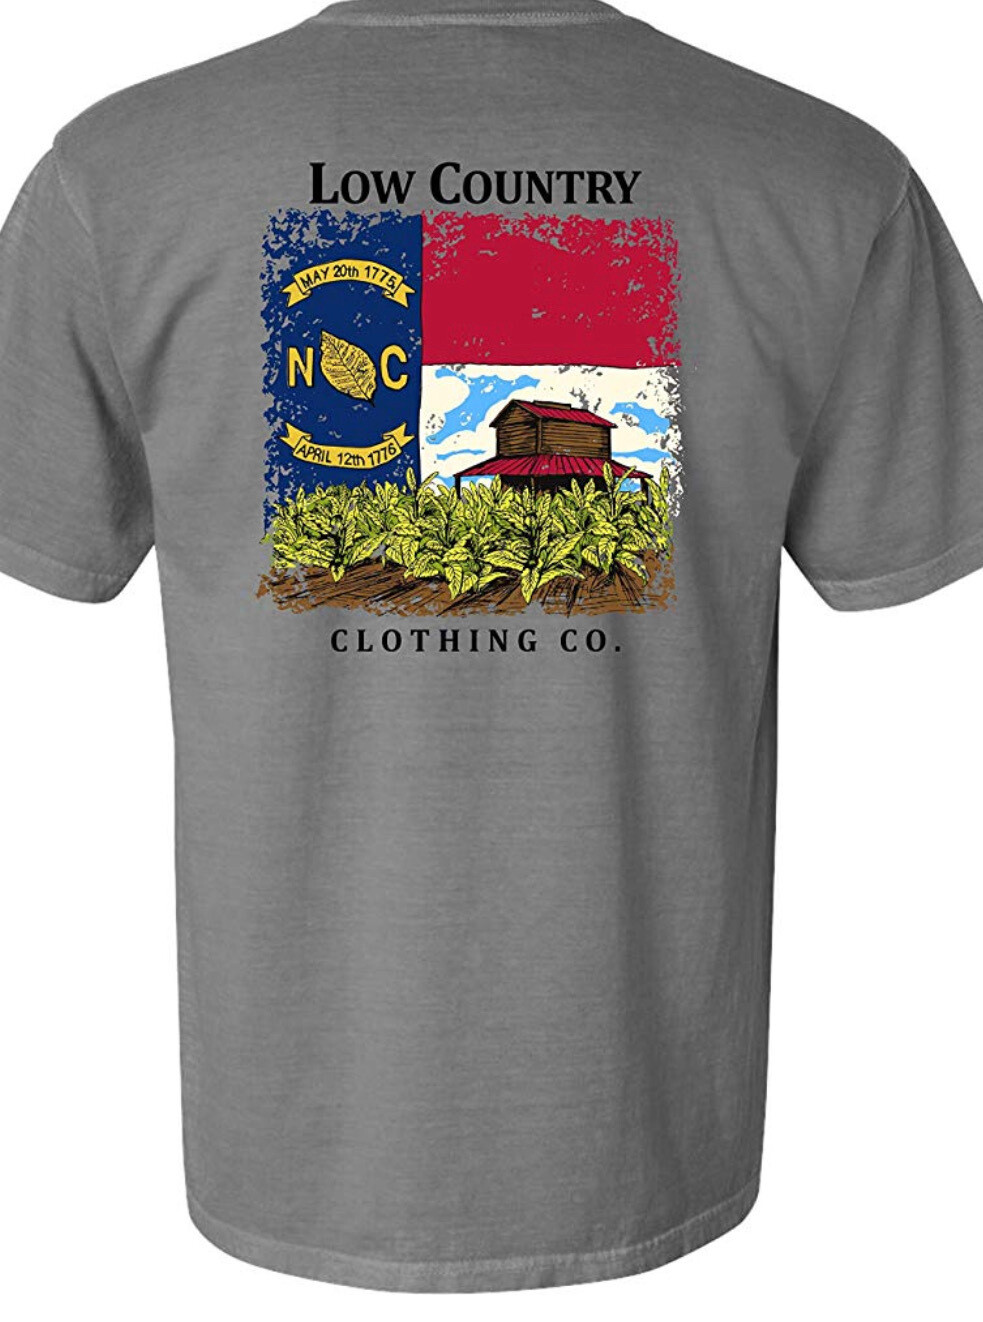 Riverbed Threads Flag and barn t shirt